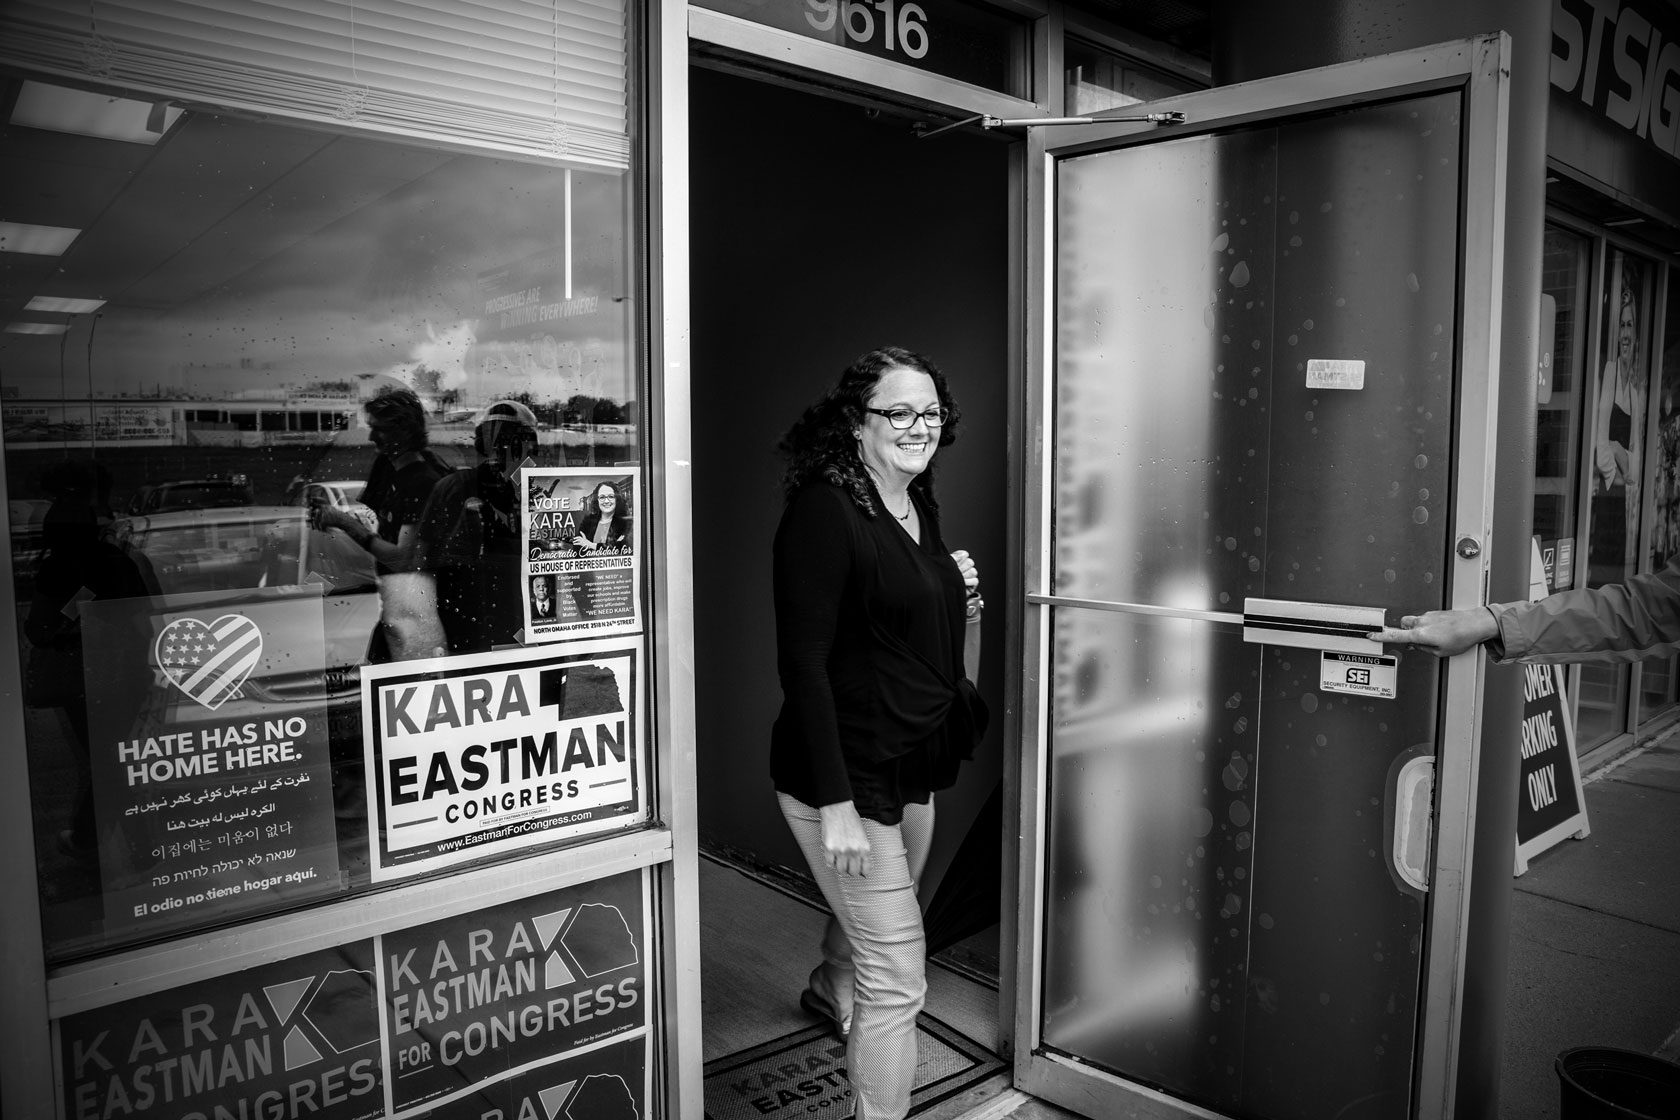 Kara Eastman walks out of her office in Omaha, Nebraska.                         srcset=